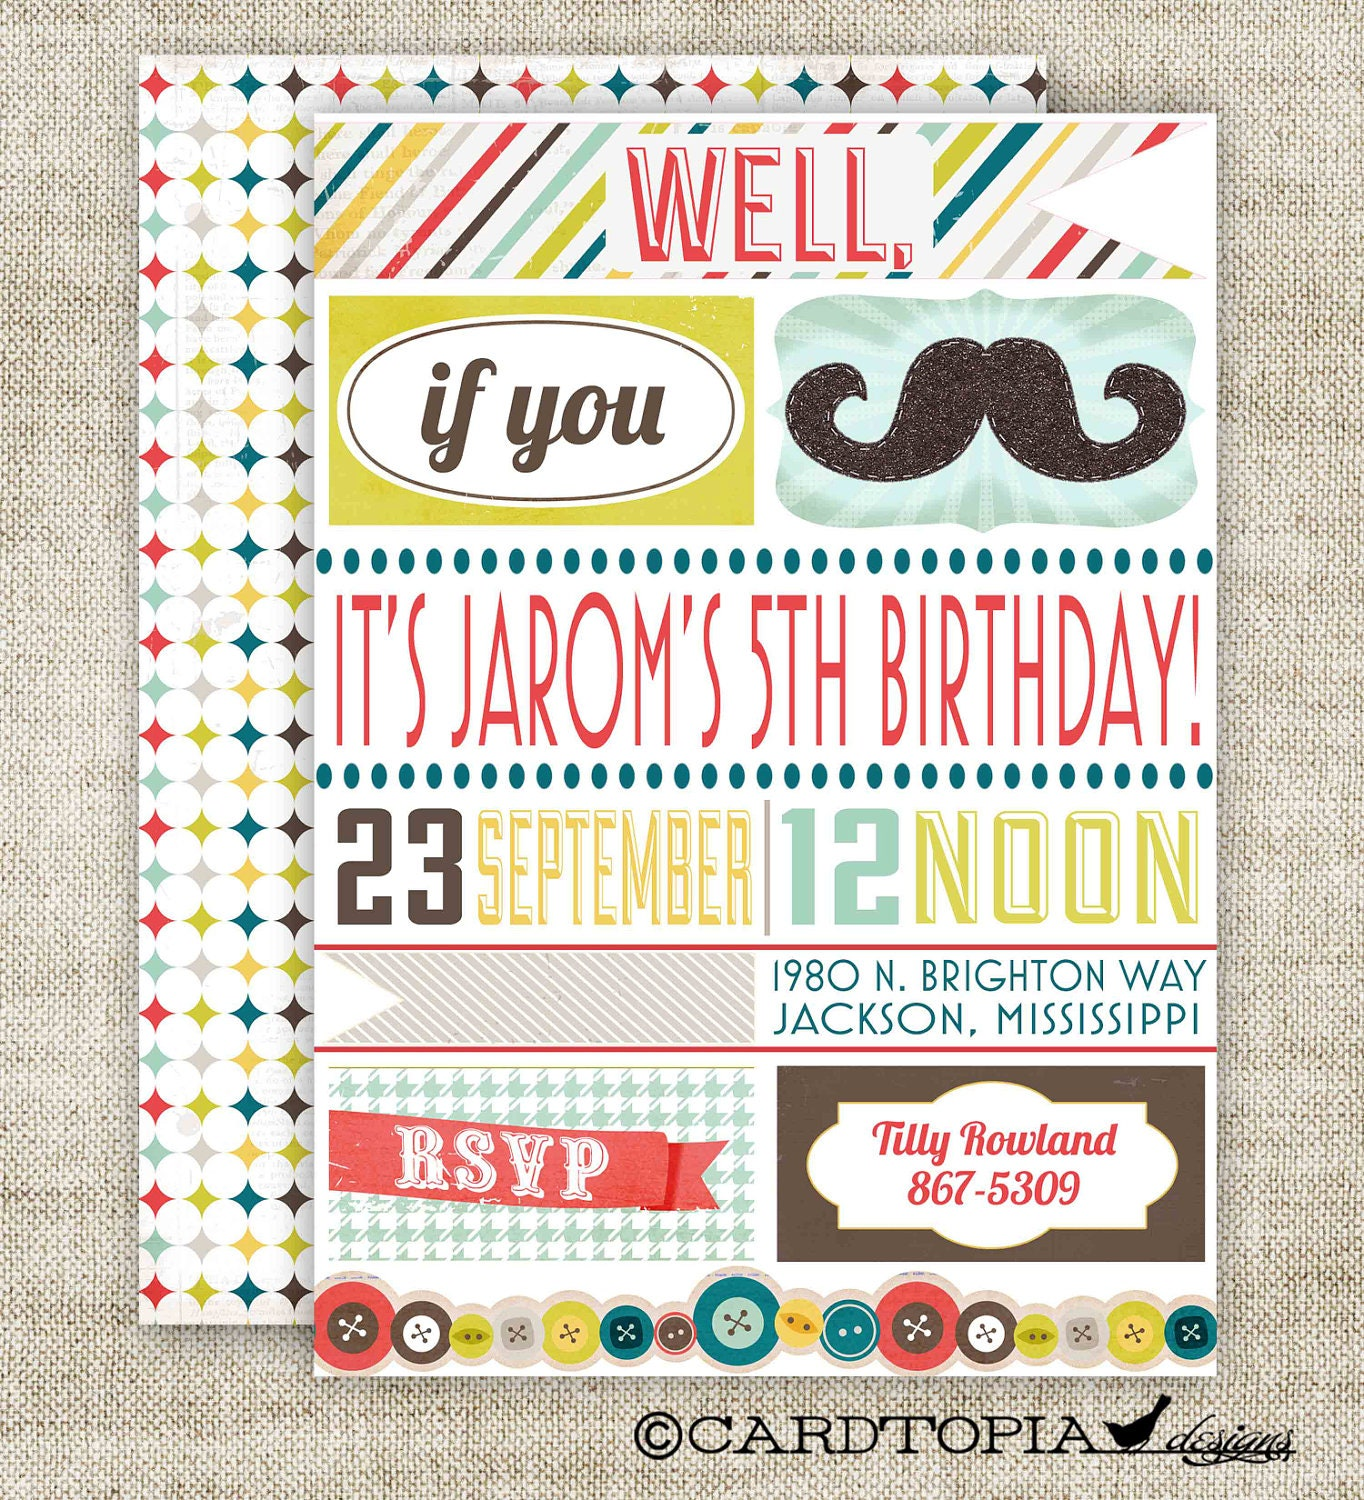 Mustache Party Invitations could be nice ideas for your invitation template